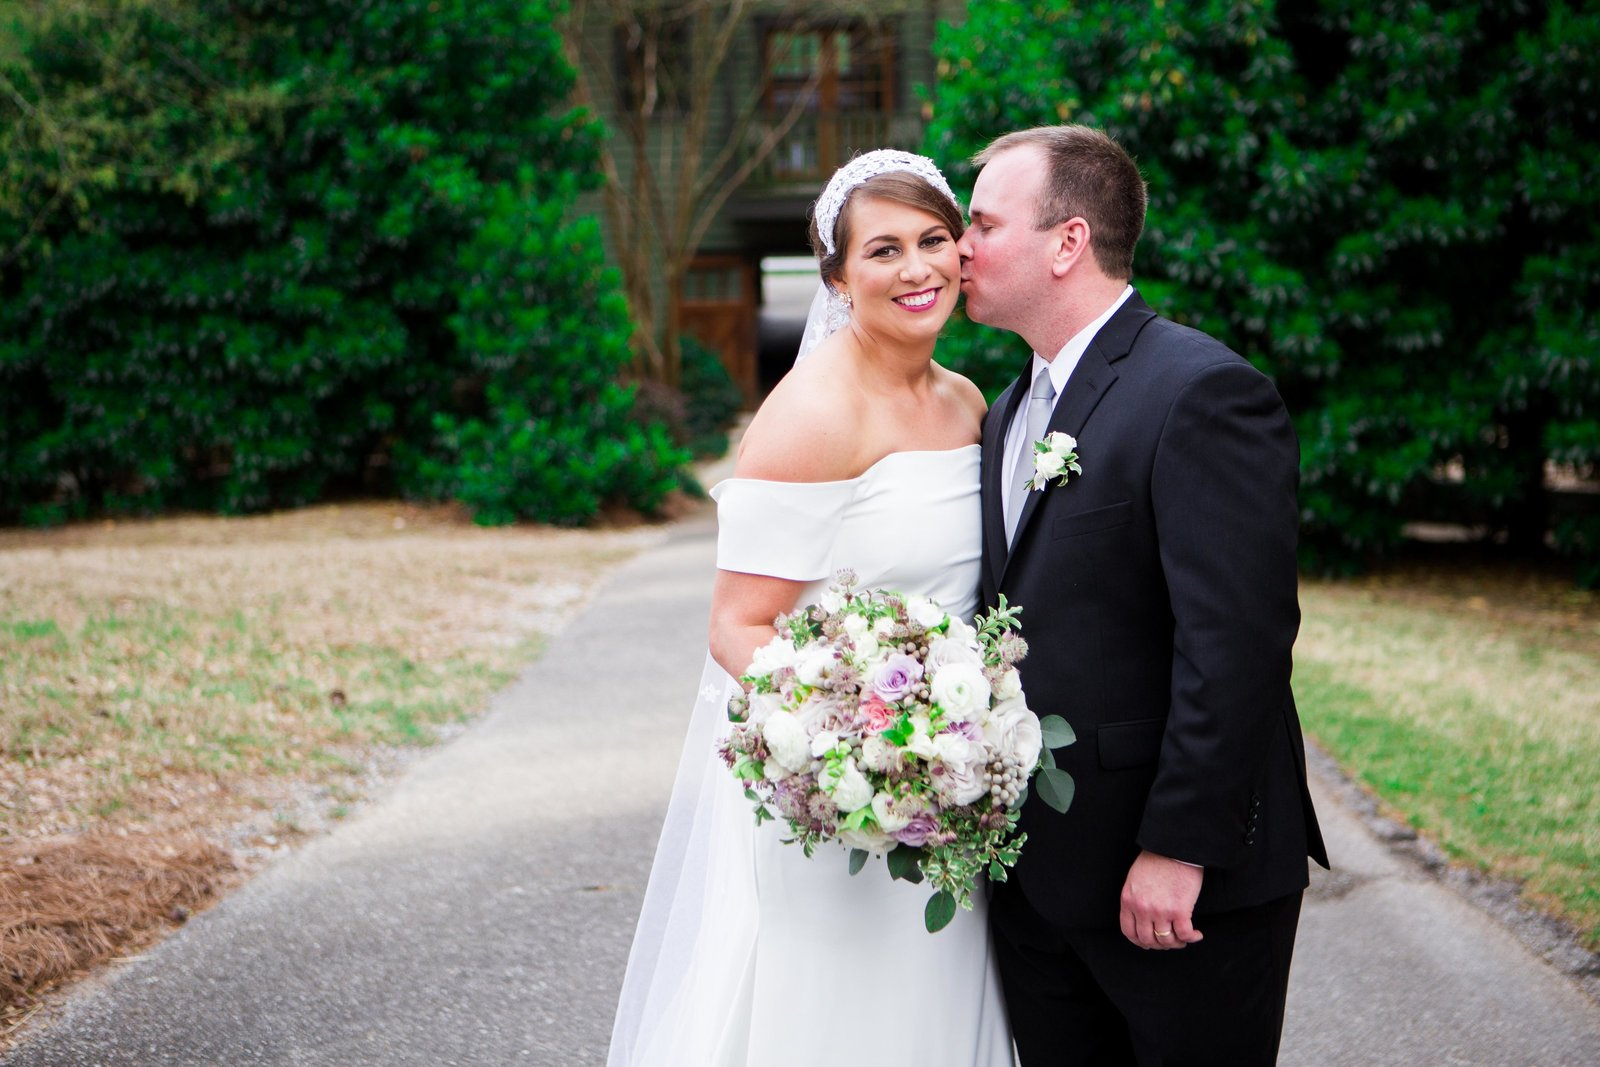 Windwood_Equestrian_Outdoor_Wedding_Venue_Alabama_Farm_Bride079